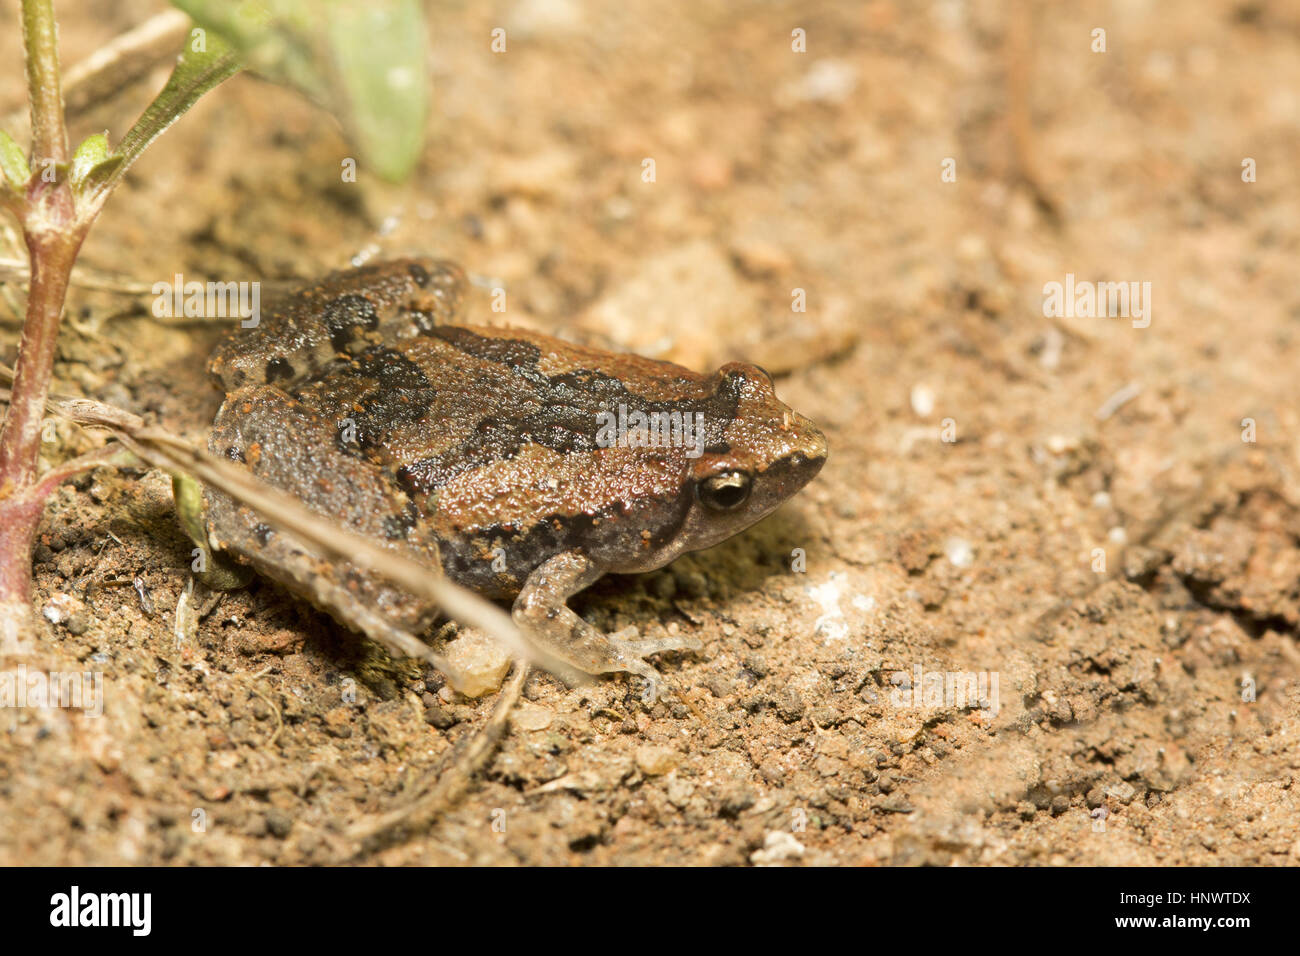 Narrowmouthed frog, Microhyla sp., Barnawapara WLS, Chhattisgarh. Family Microhylidae and consists of - Stock Image